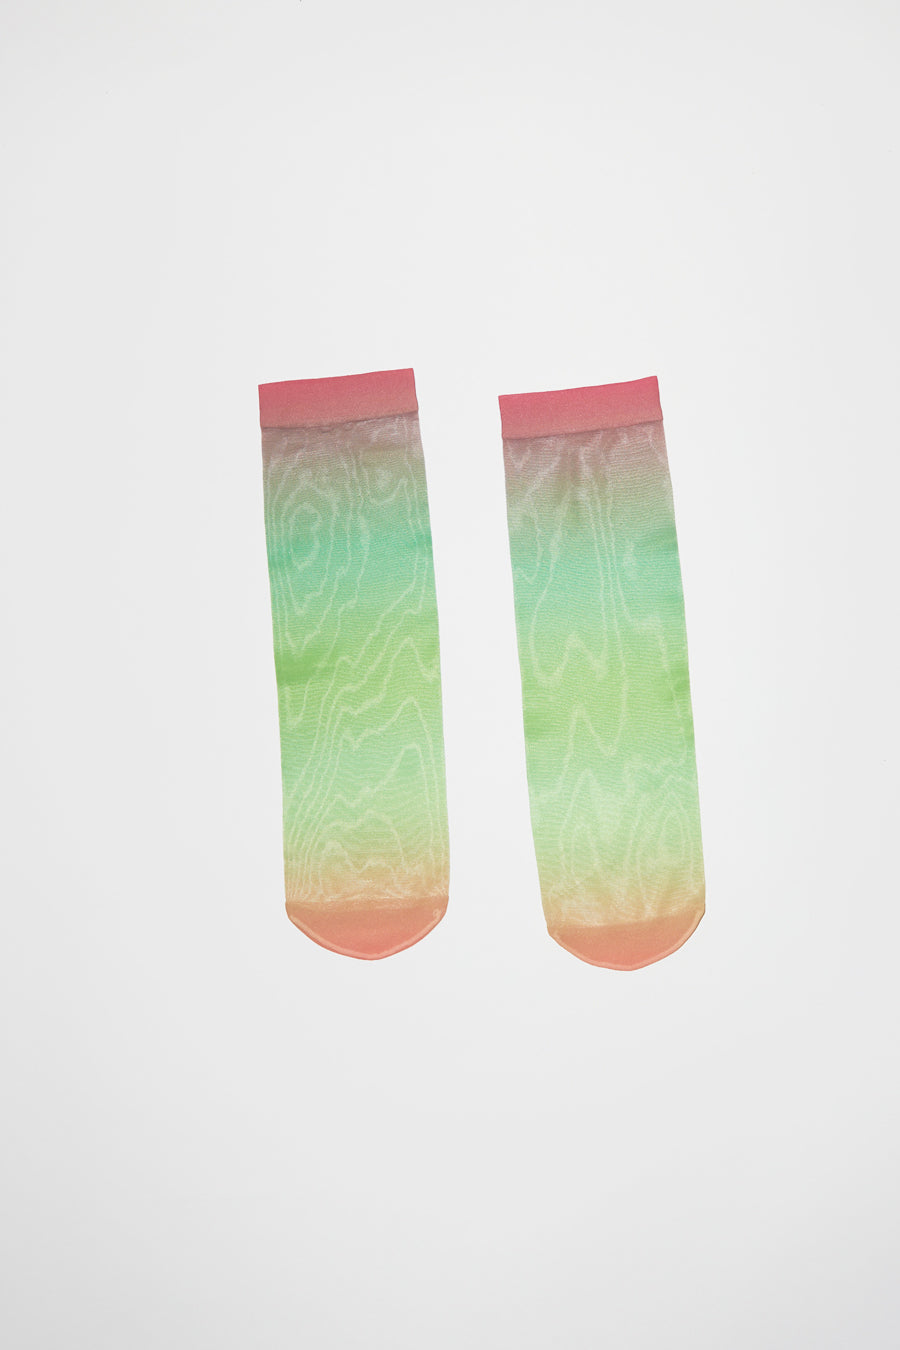 Maria La Rosa Fluo Sheer Sock in Green Ombre